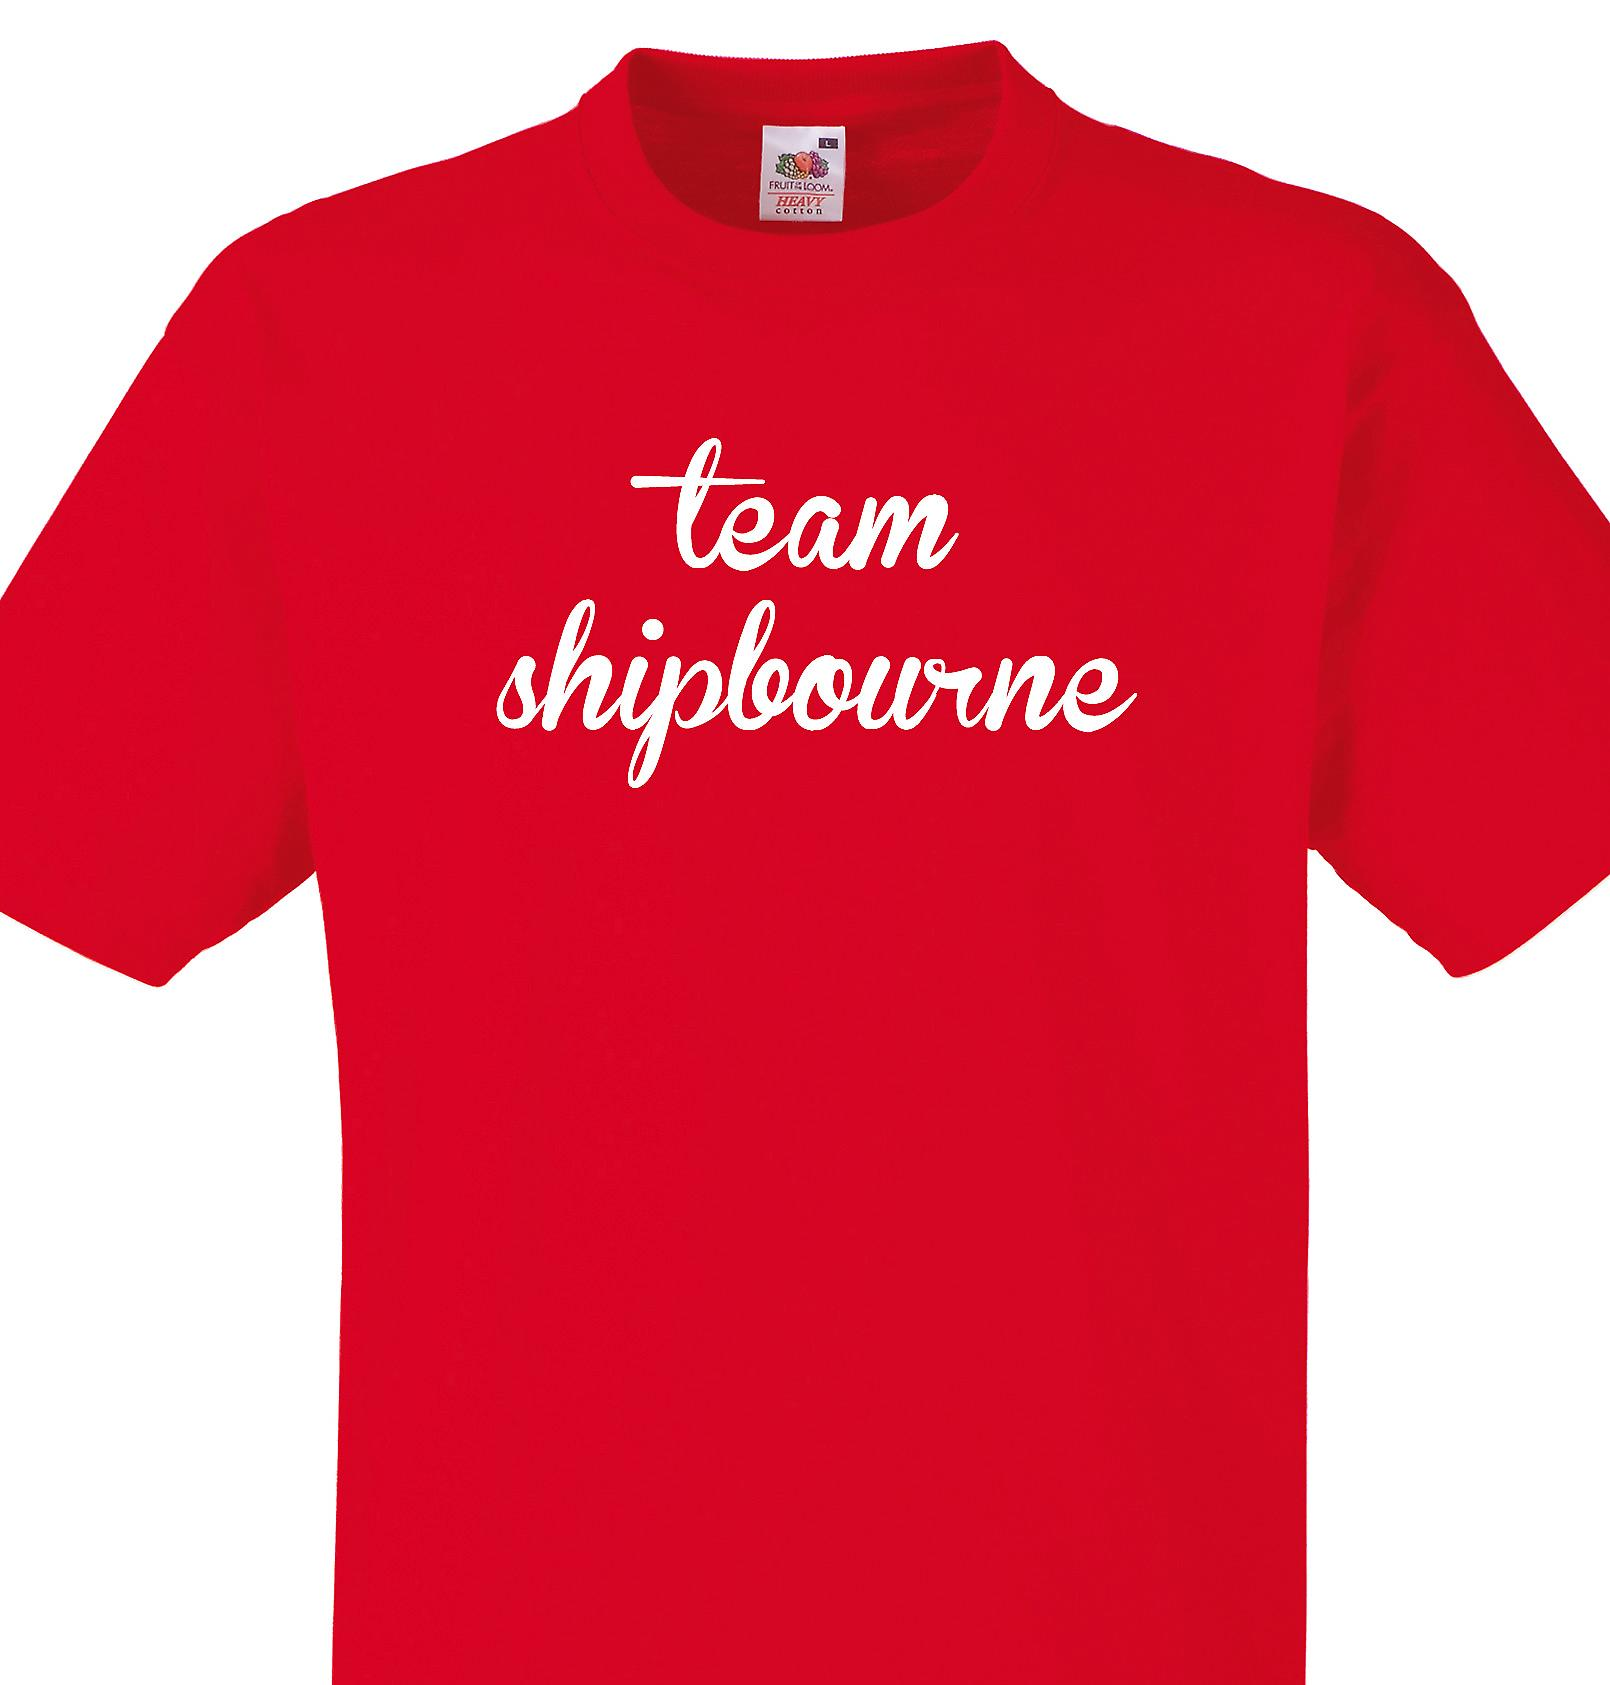 Team Shipbourne Red T shirt